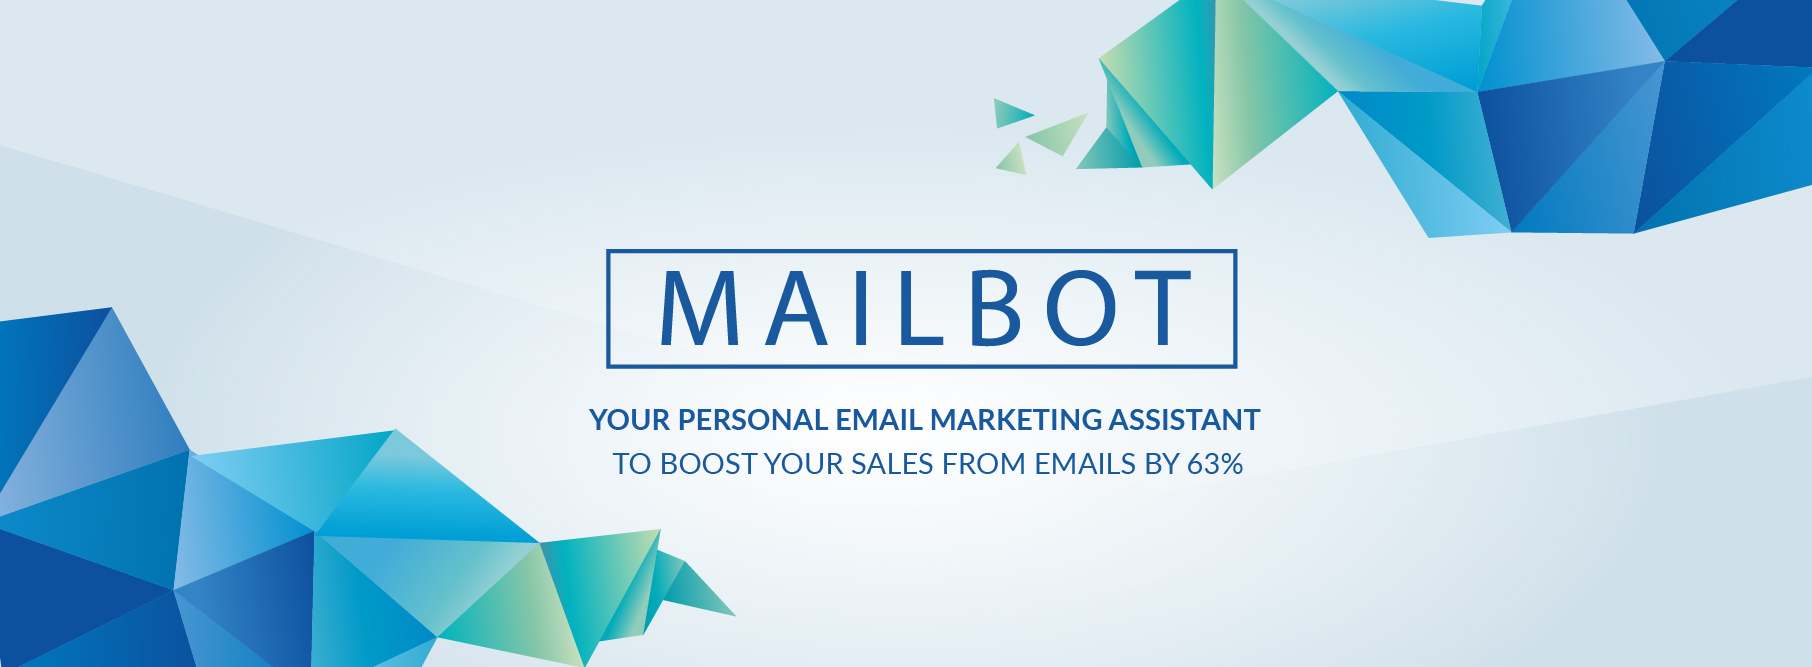 virtual email marketing assistant